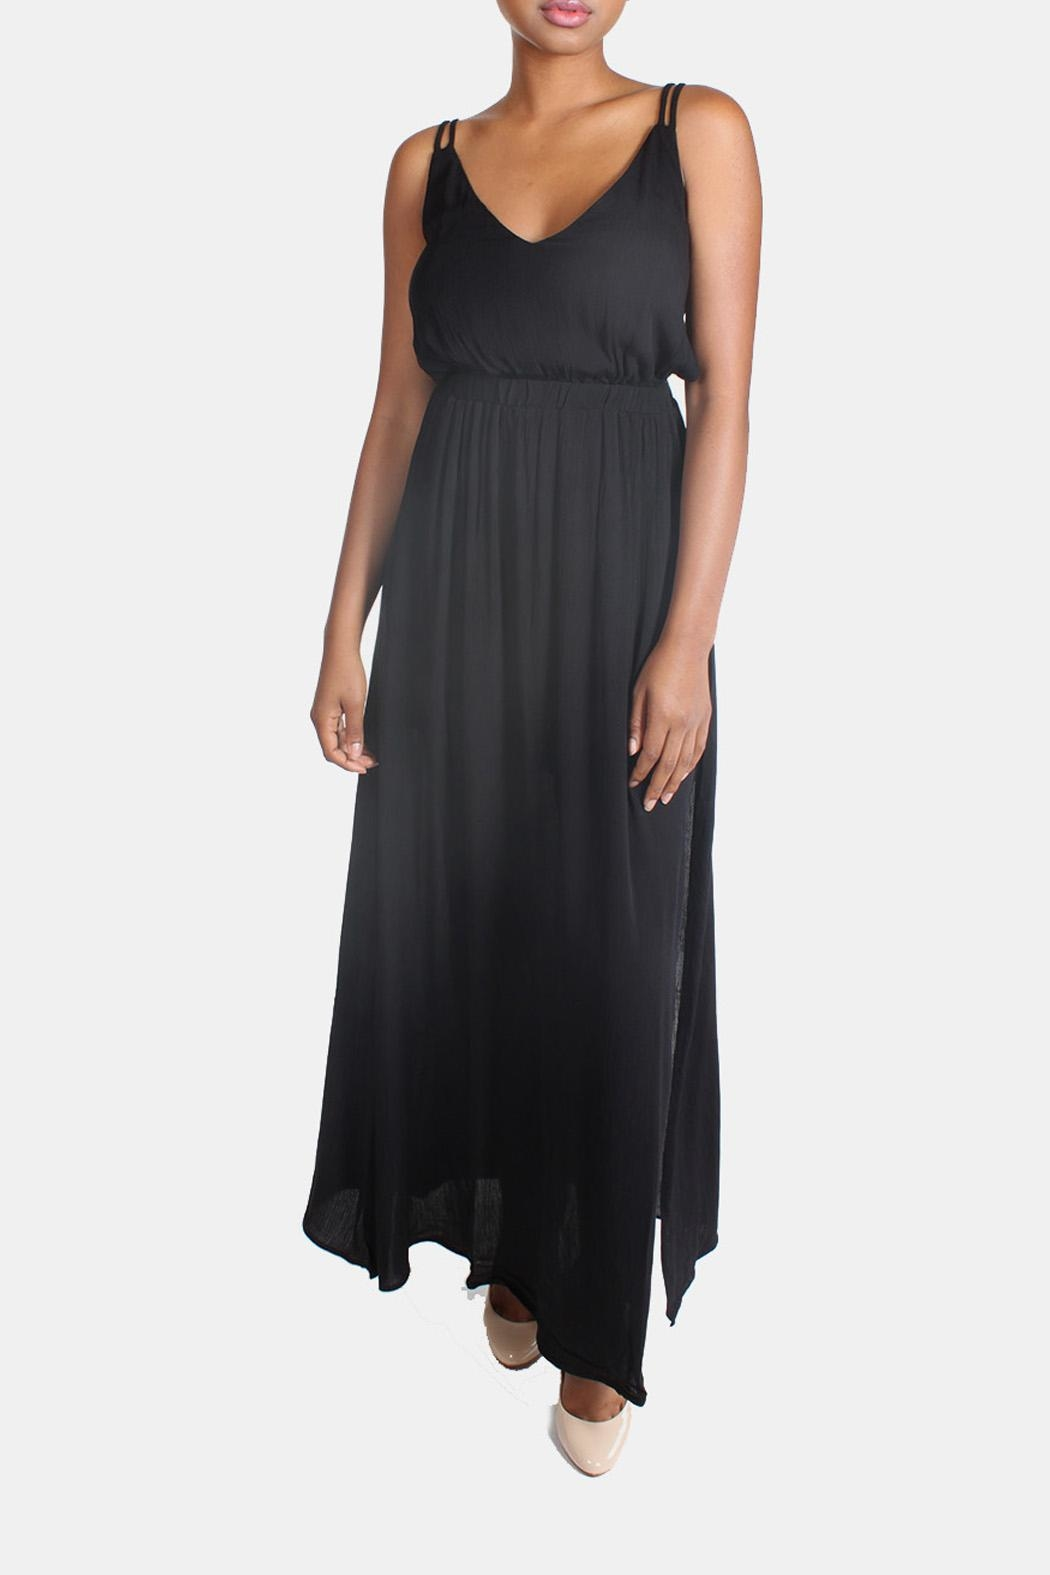 rokoko Tie Back Maxi Dress - Front Full Image